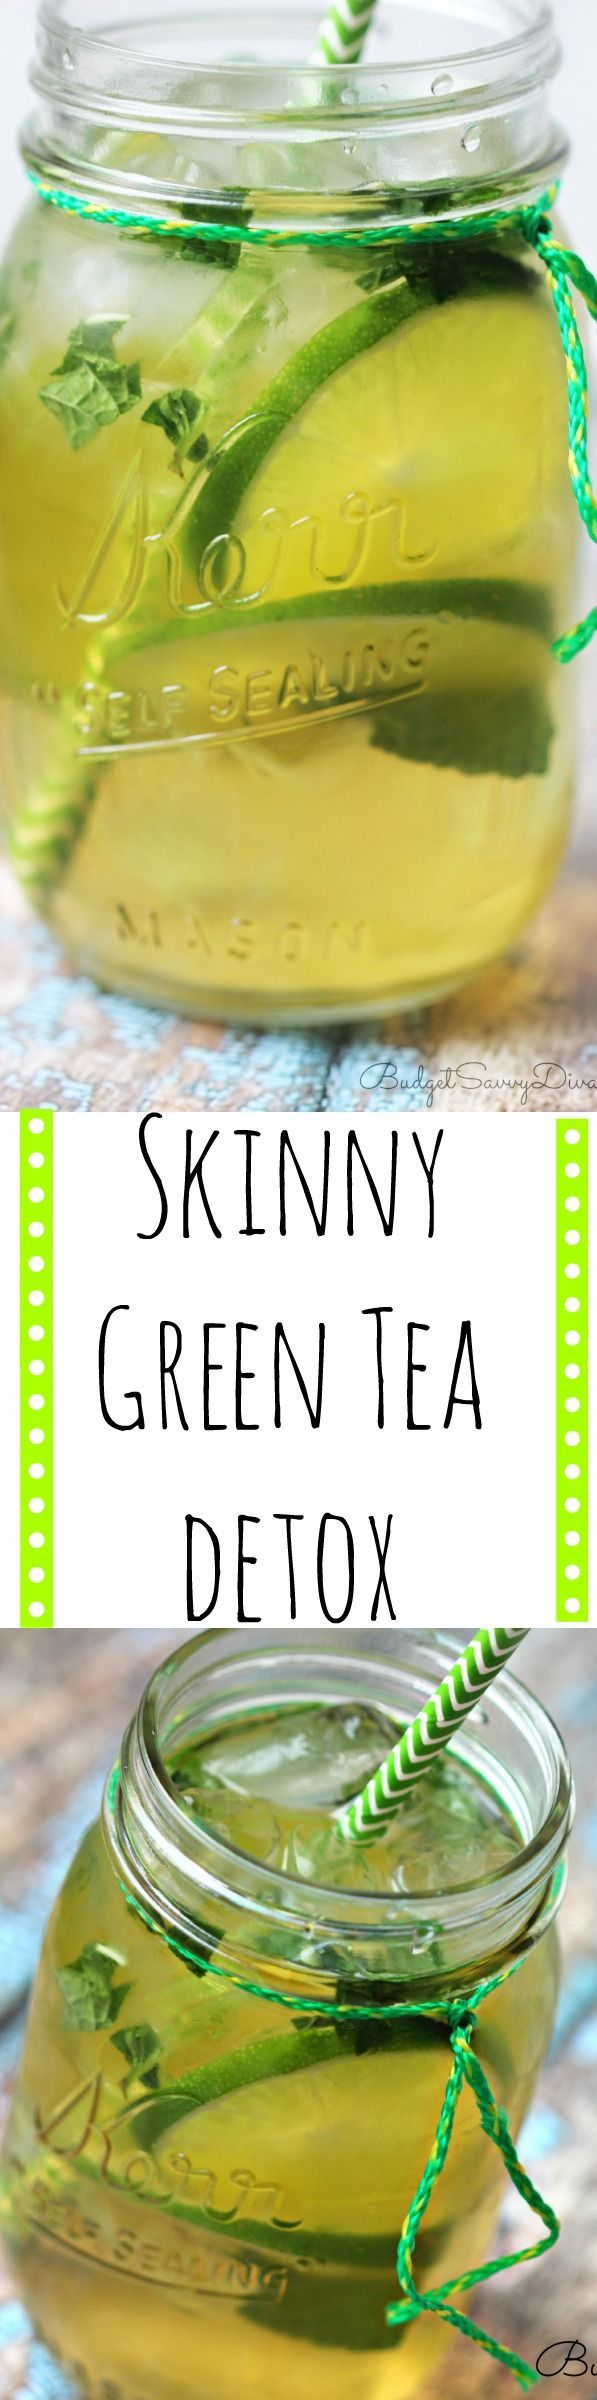 Wanting to lose a few pounds? I have been drinking this green tea detox for over a week and I have lost a bit of weight - it is not a miracle or anything but this recipe rocks! I love the lime too! Weightloss Water recipe. Skinny Green Tea Detox Recipe